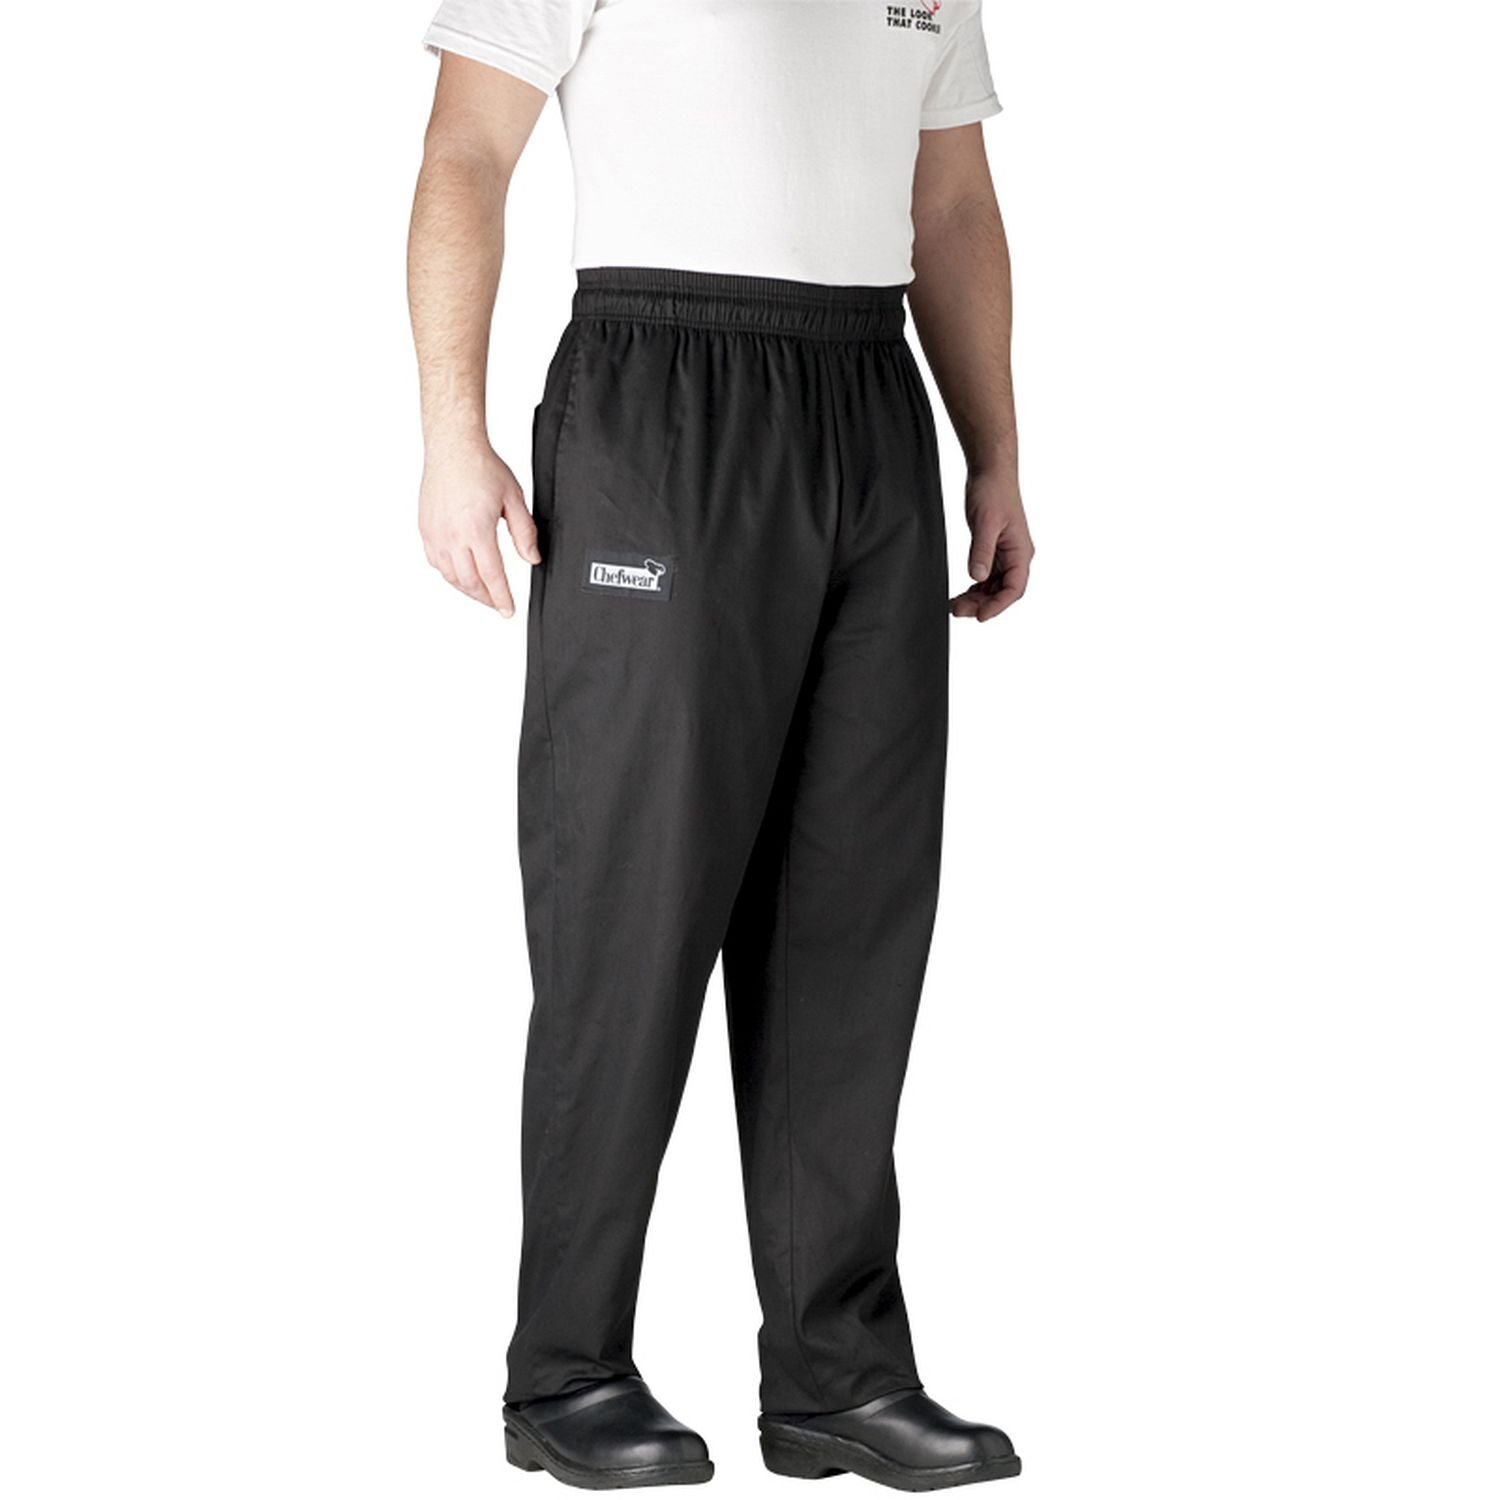 Chefwear Men's Ultimate Cotton Baggy Chef Pants Big, Black, 4X-Large by Chefwear